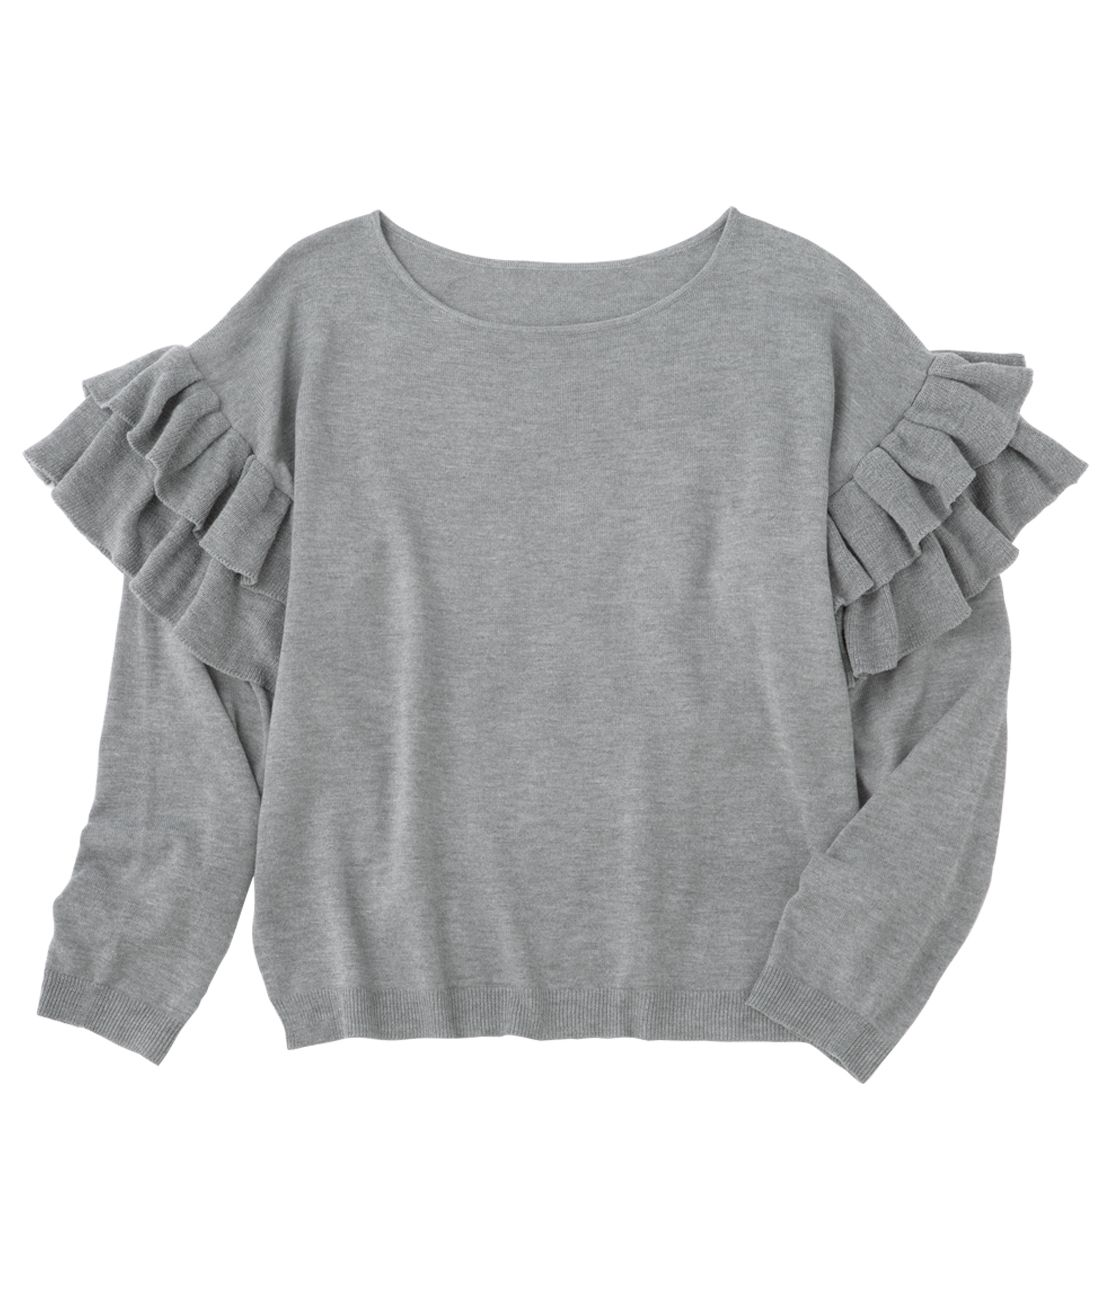 2WAY ruffle knit sleeves can be taken